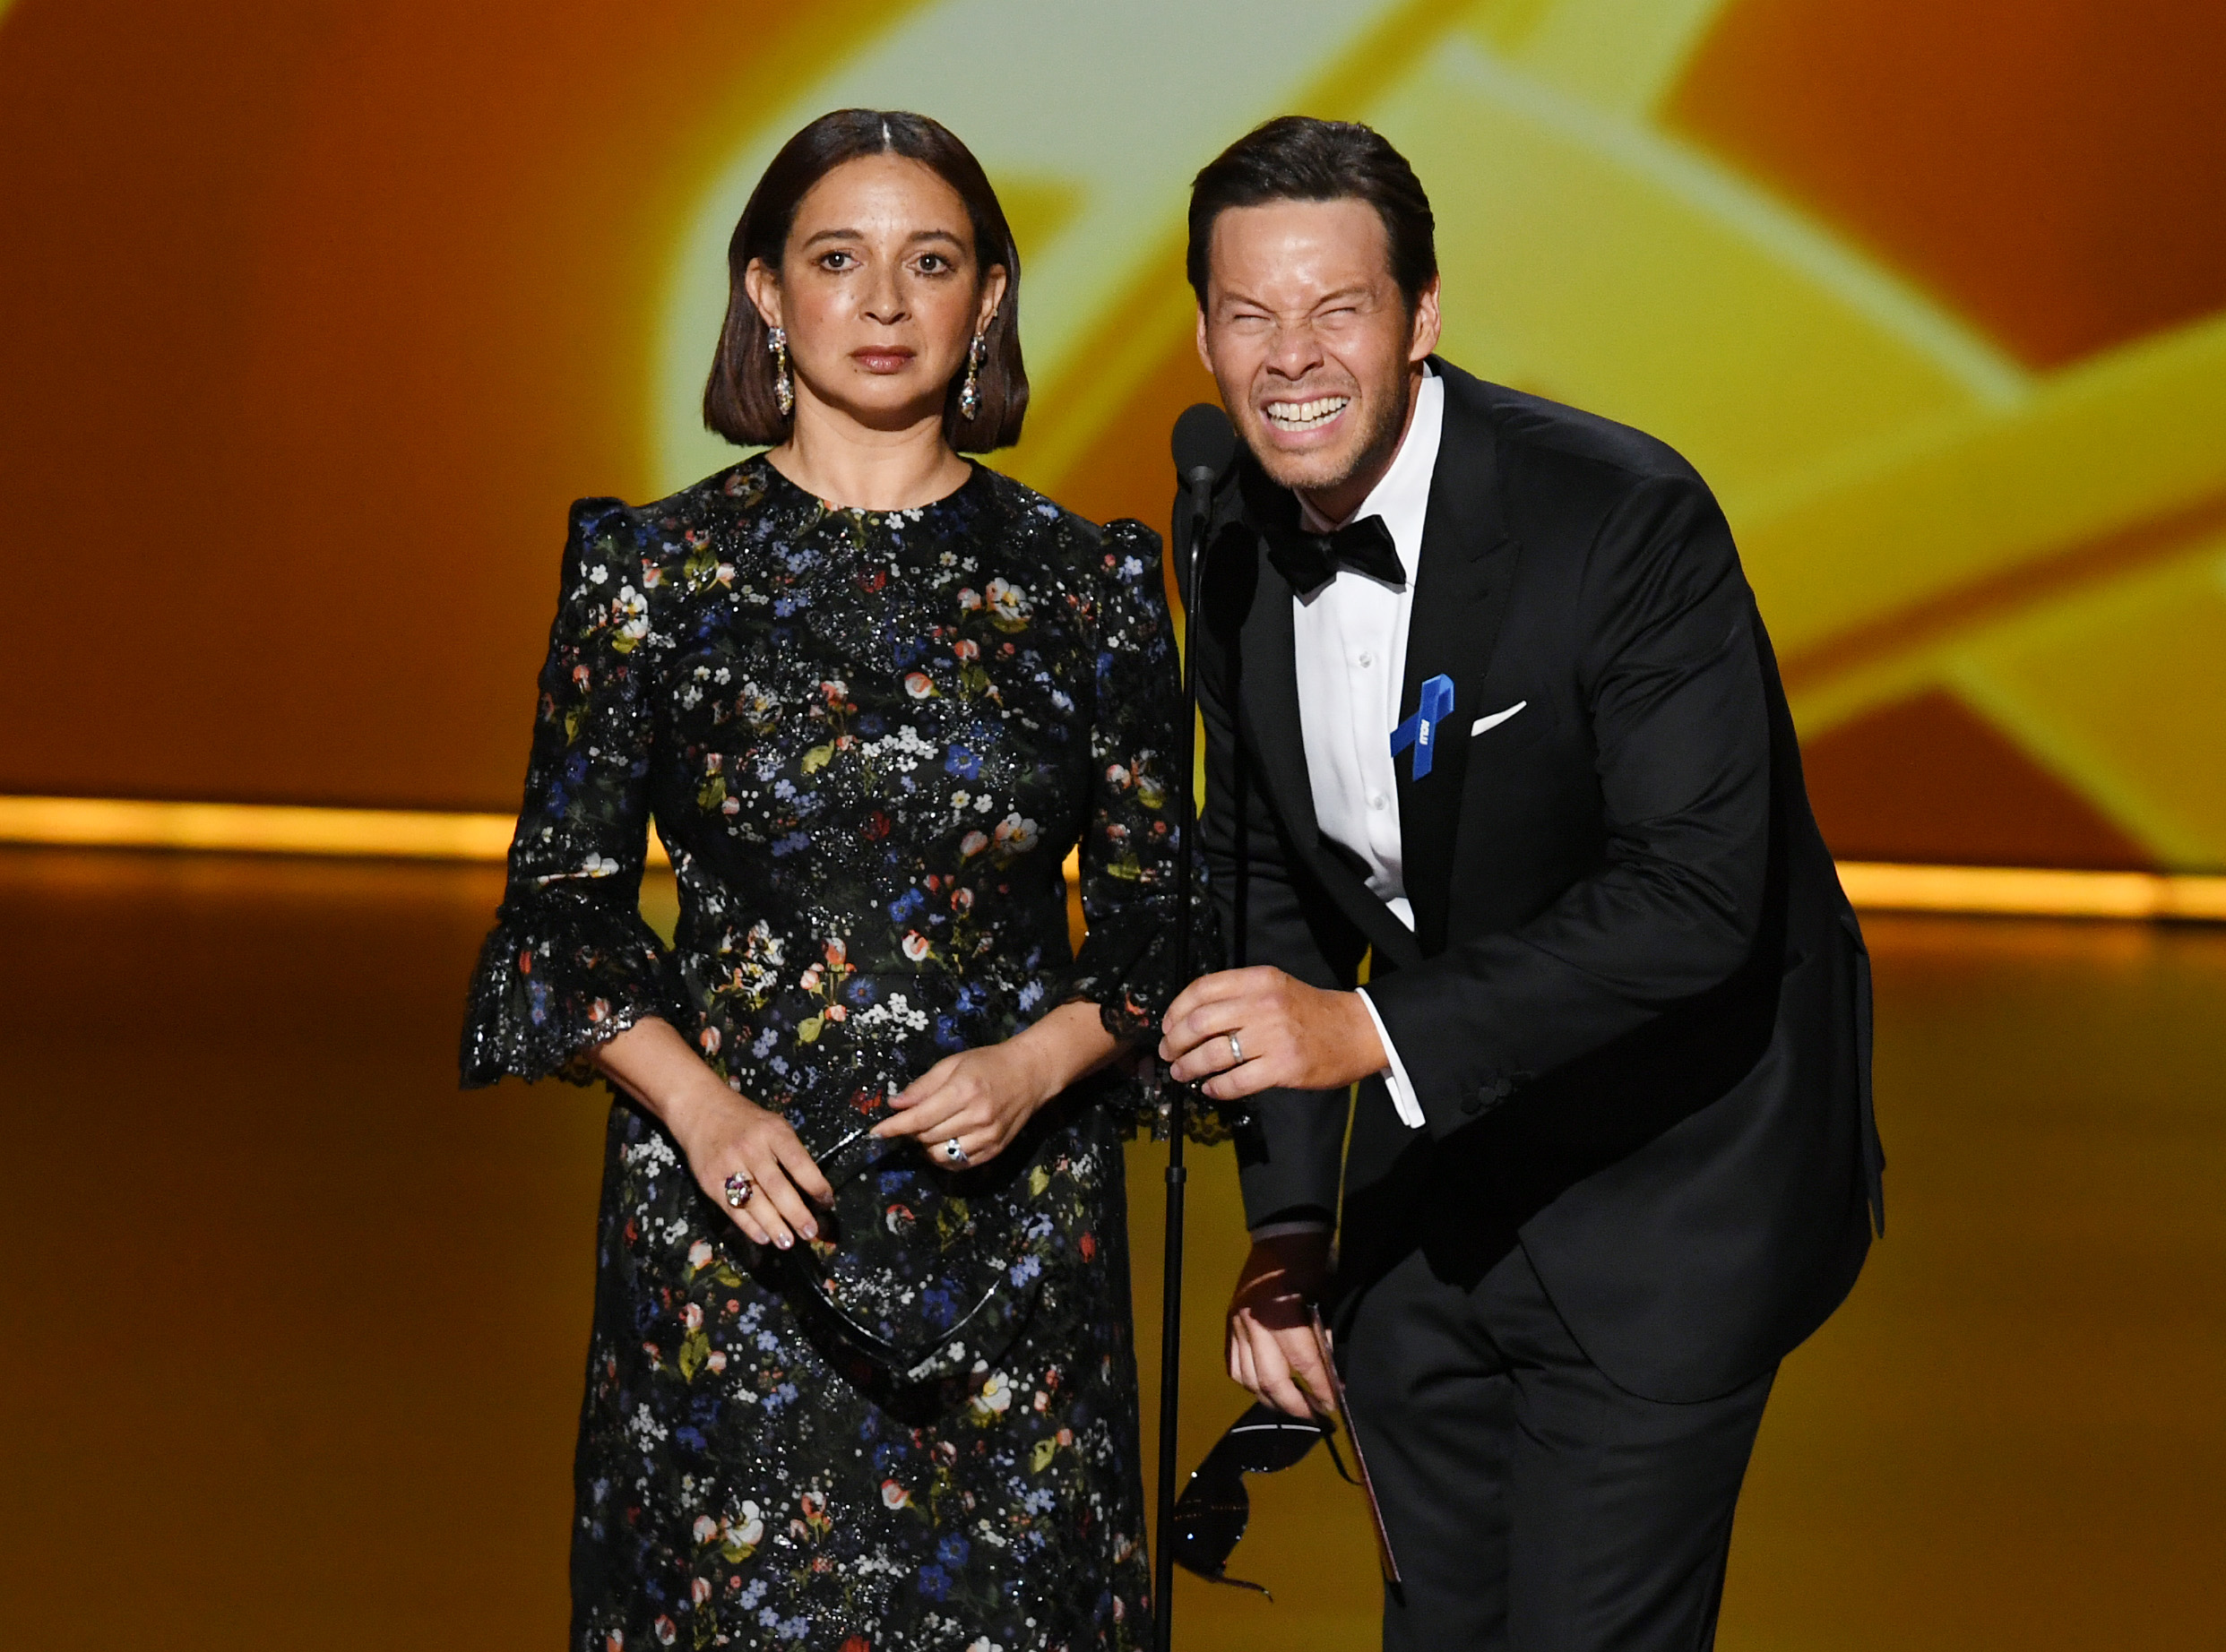 Maya Rudolph and Ike Barinholtz pretend to have just gotten Lasik surgery, rendering them unable to read the teleprompter.